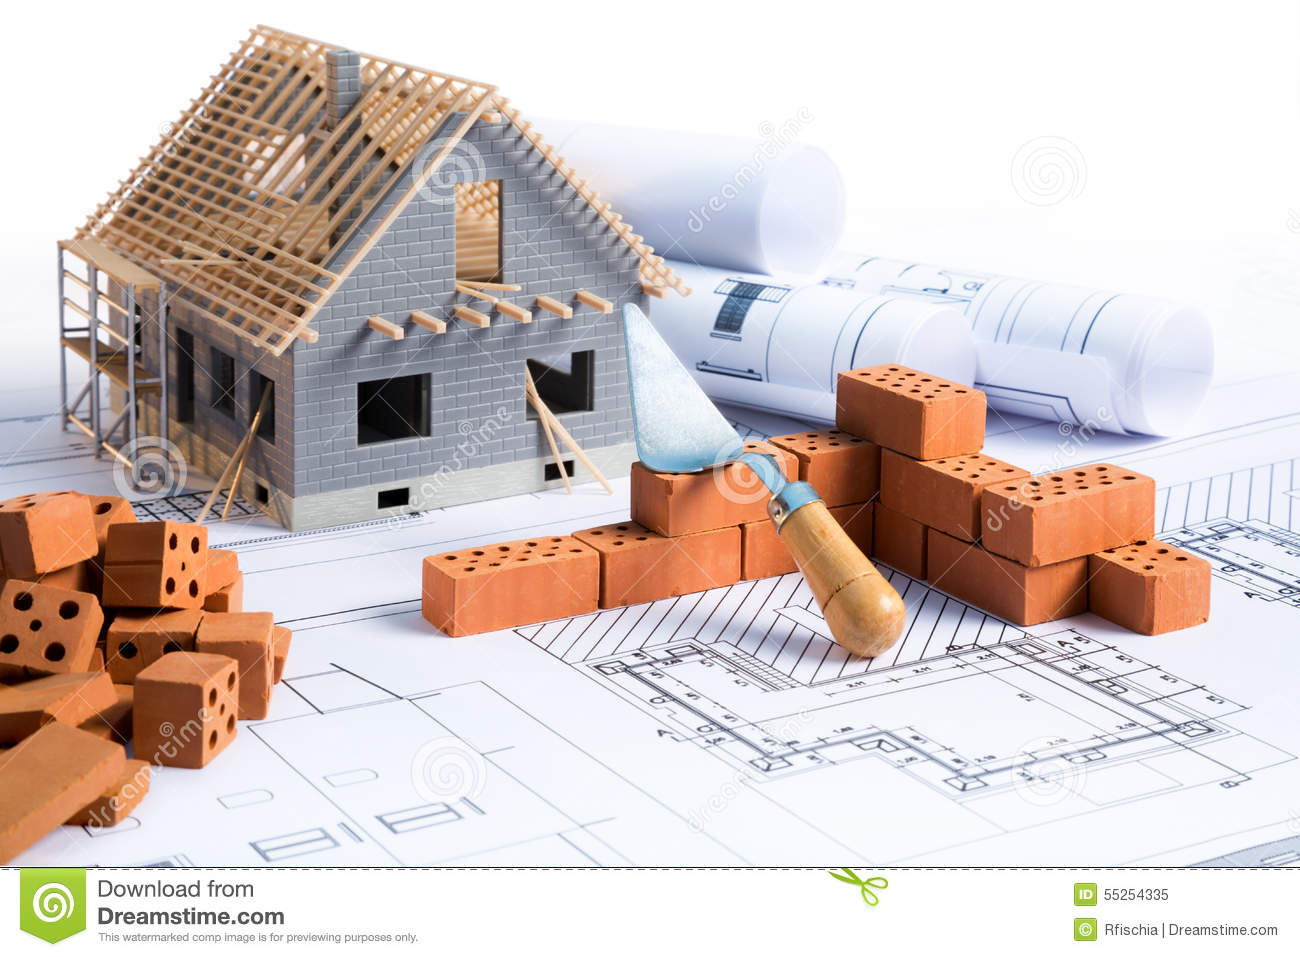 House in construction project stock image image of for Construccion casas